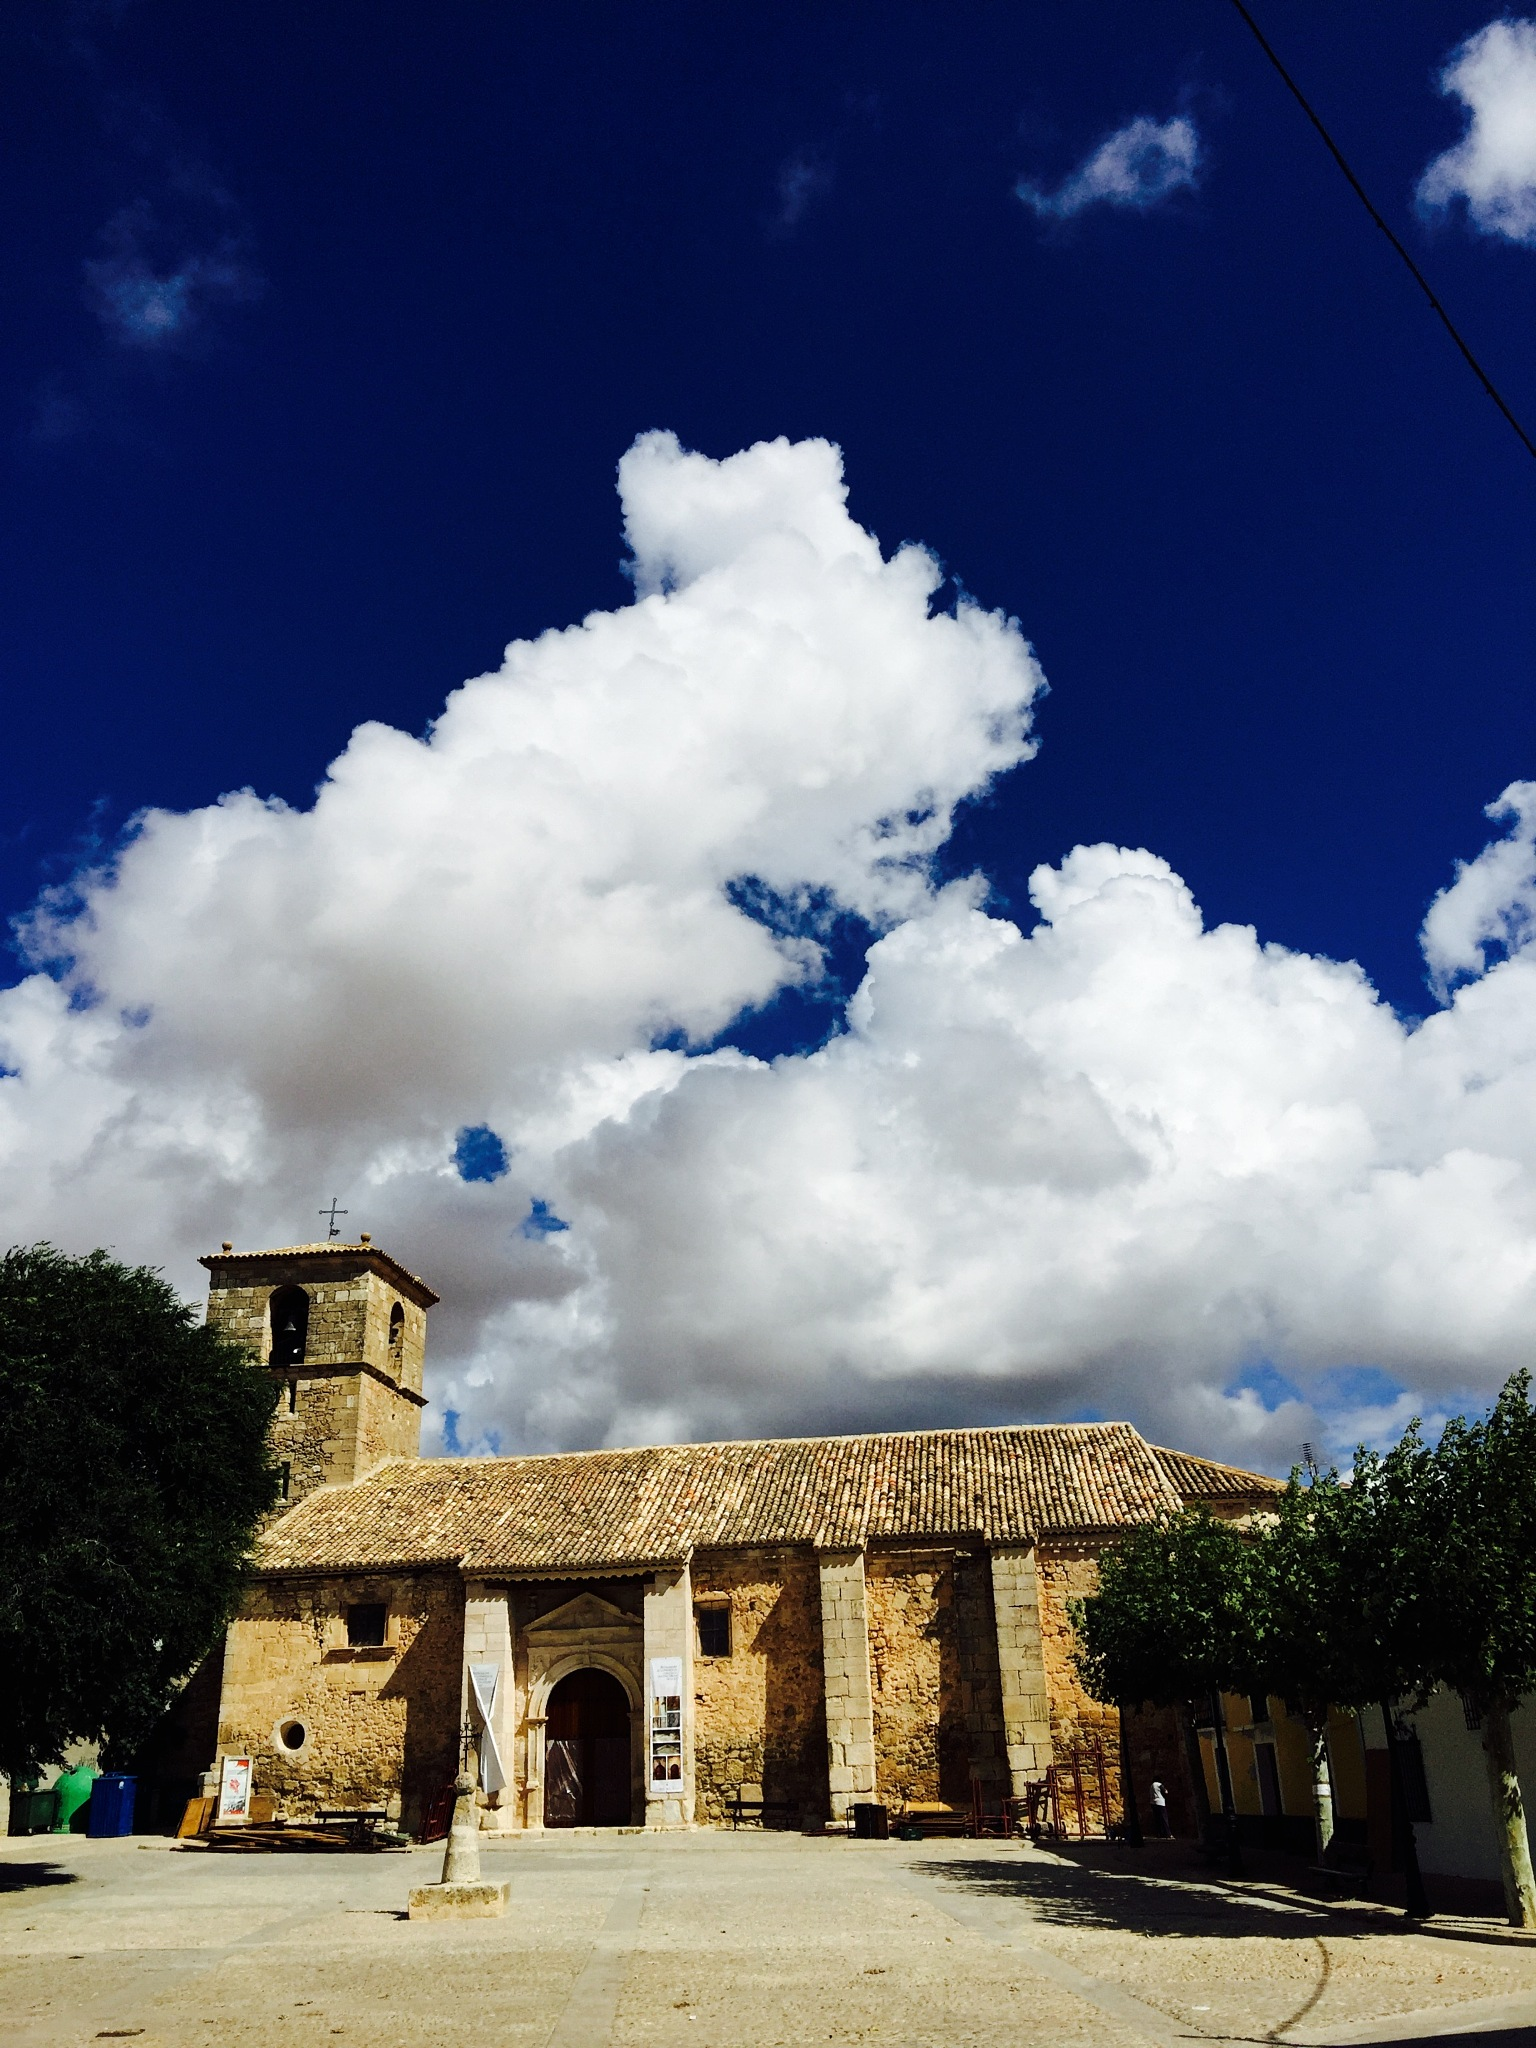 Church in the clouds by Gregorio Emper